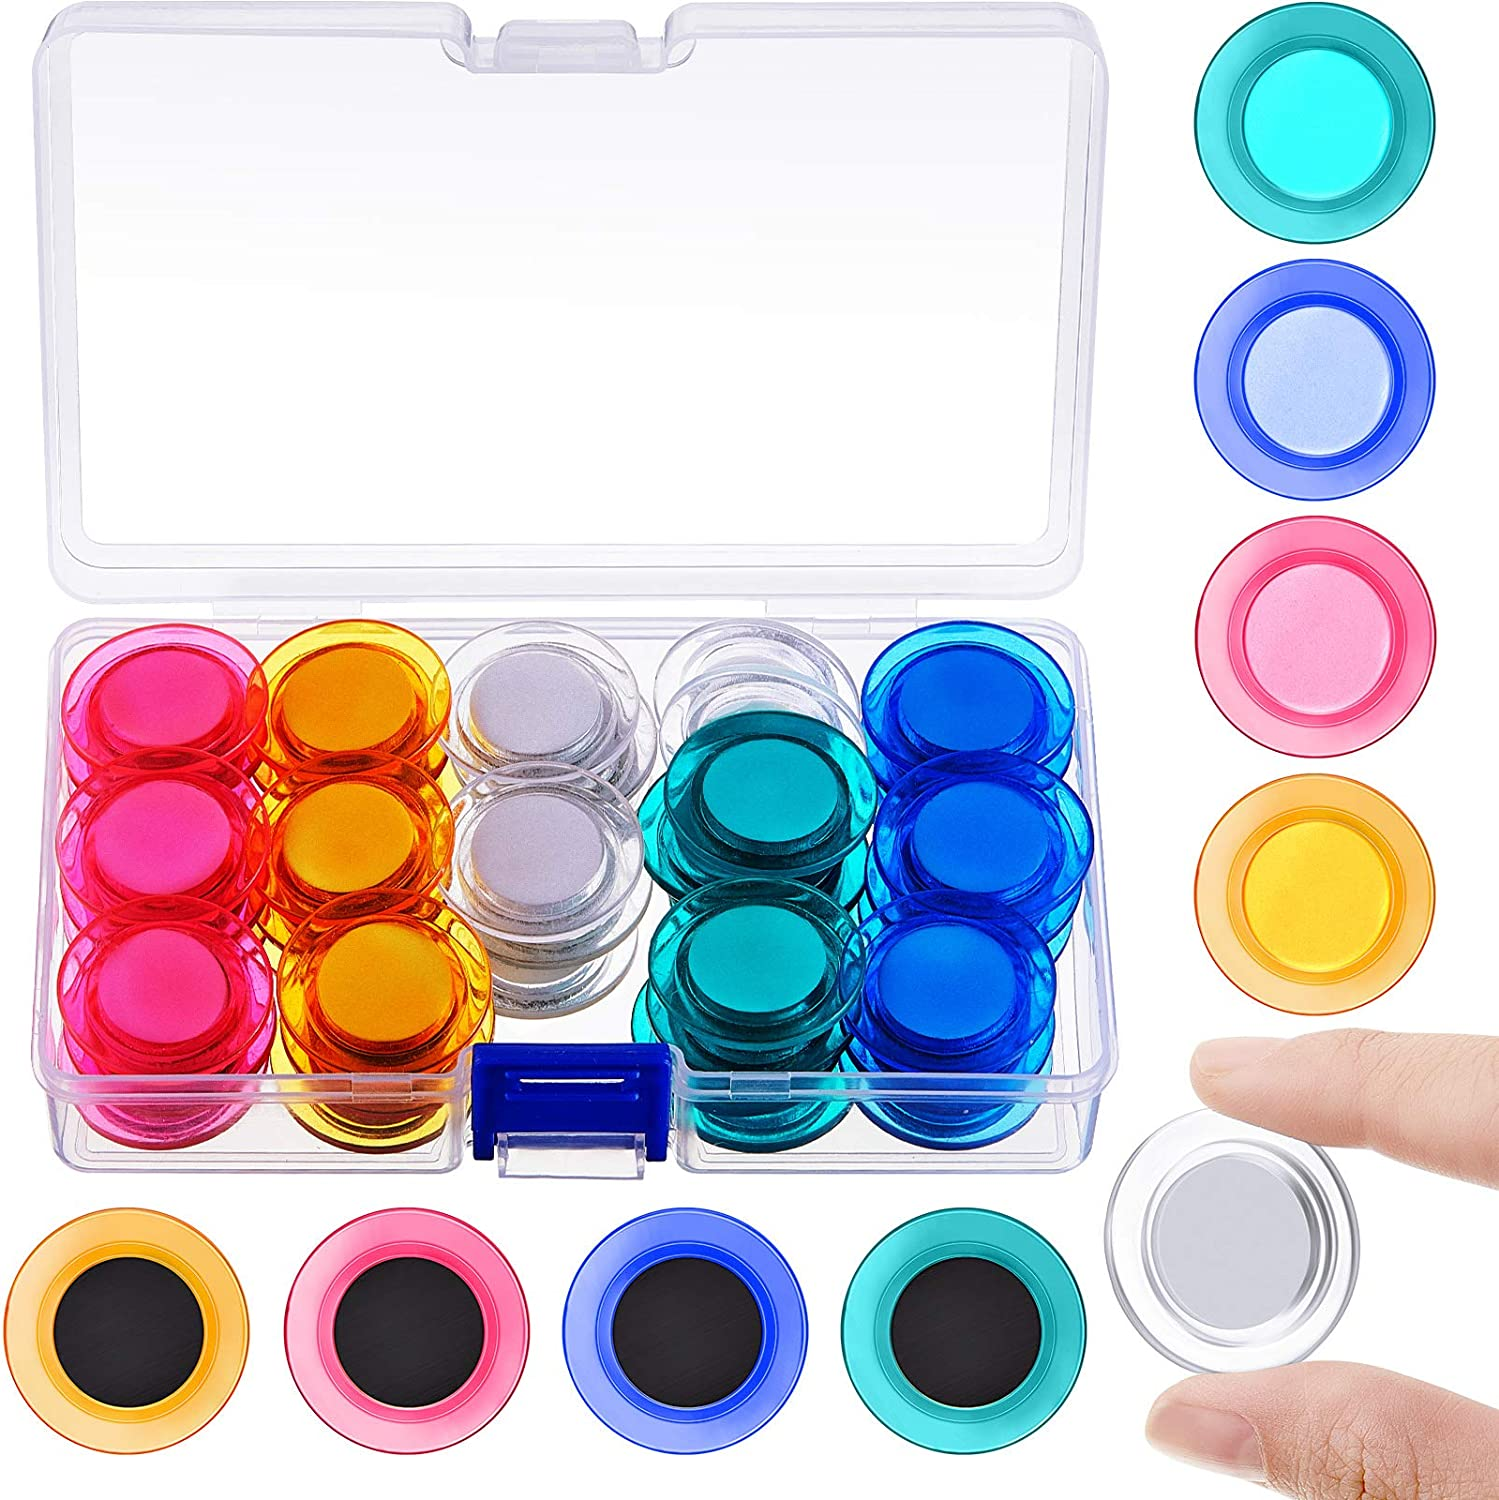 45 Pieces Round Magnets Circle Whiteboard Magnets Mini Fridge Magnet for Home Schools Offices (Assorted Colors)